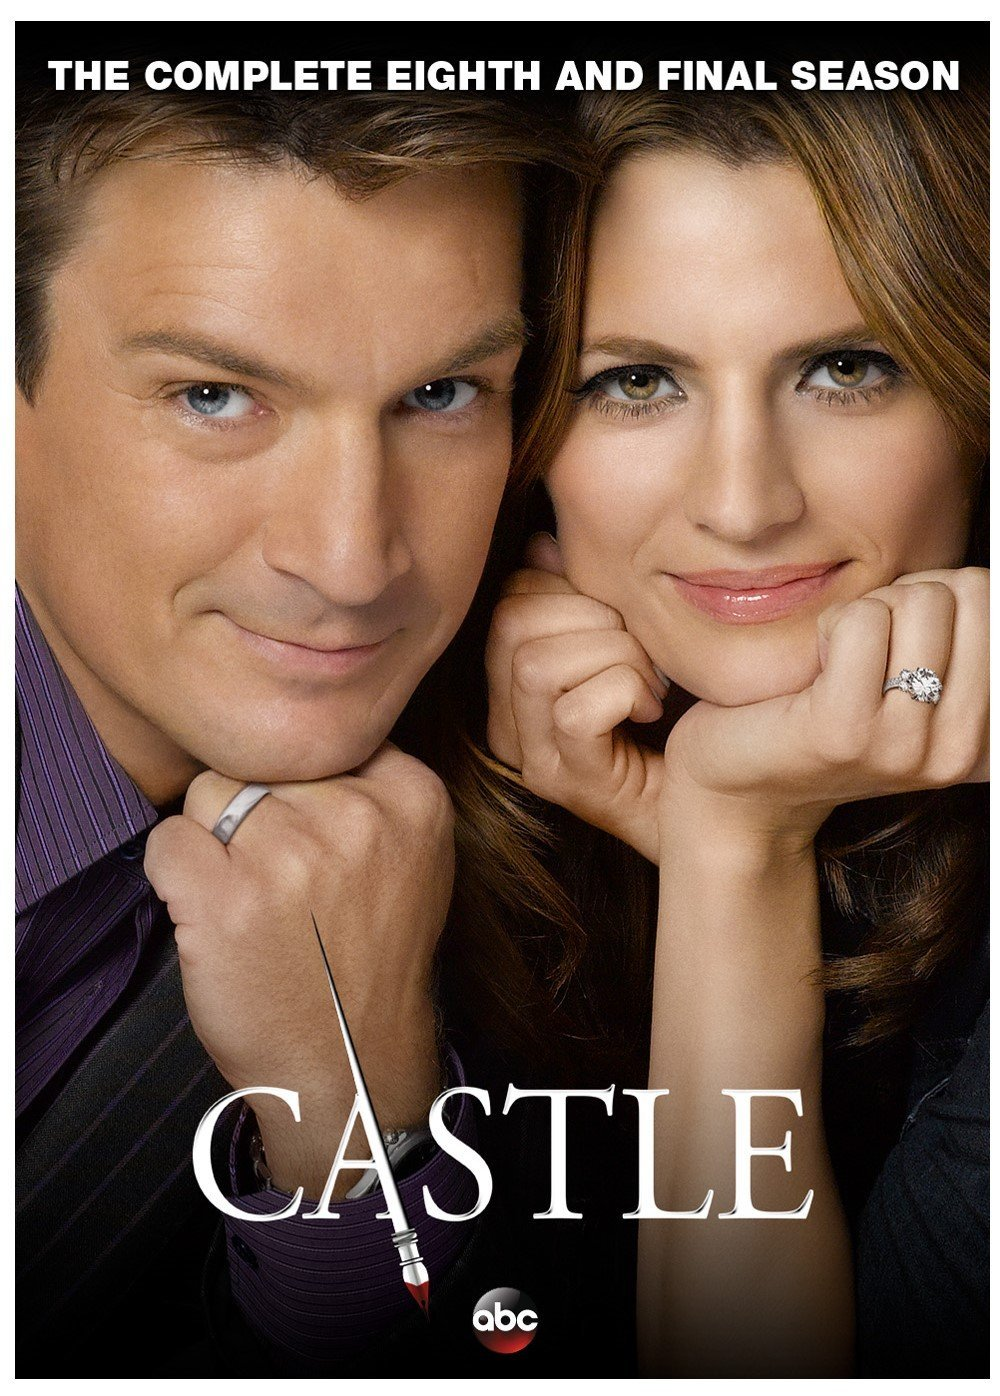 Castle: The Complet Eighth Season 35644176 Drama Movie TV Shows / TV Movie